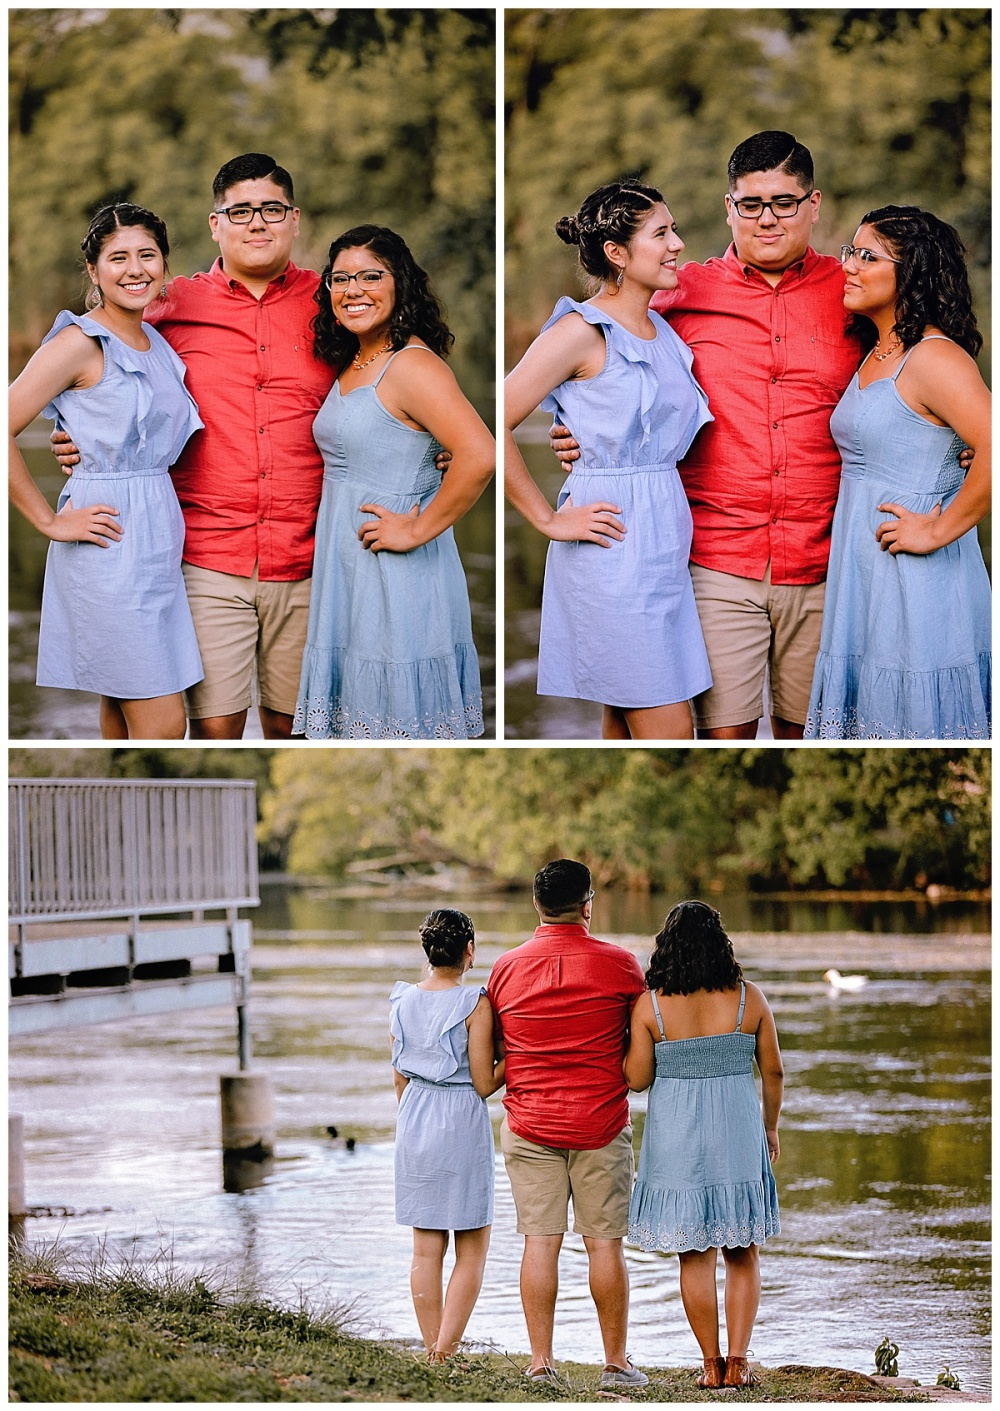 Carly-Barton-Photography-Family-Session-Landa-Park-New-Braunfels-Texas-Benavides_0010.jpg